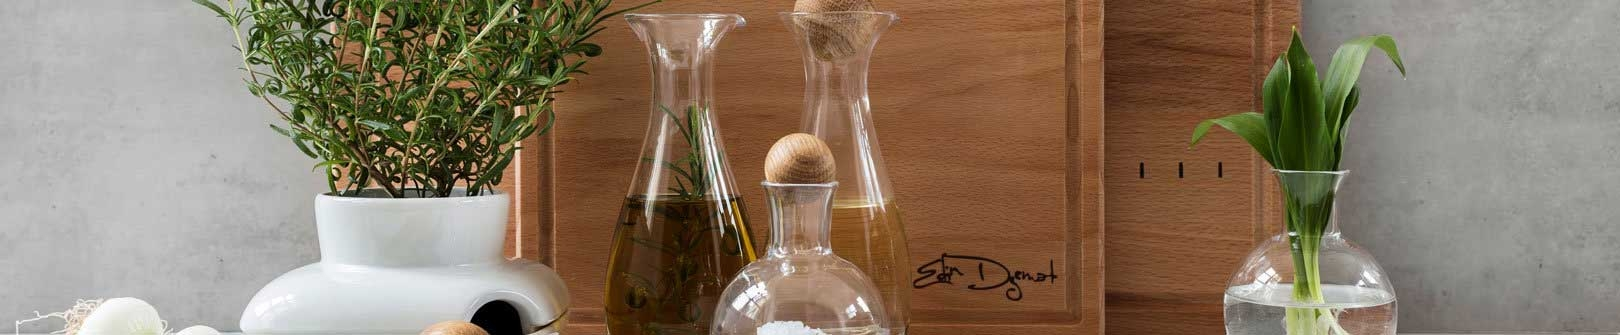 Oil & Vinegar Bottles